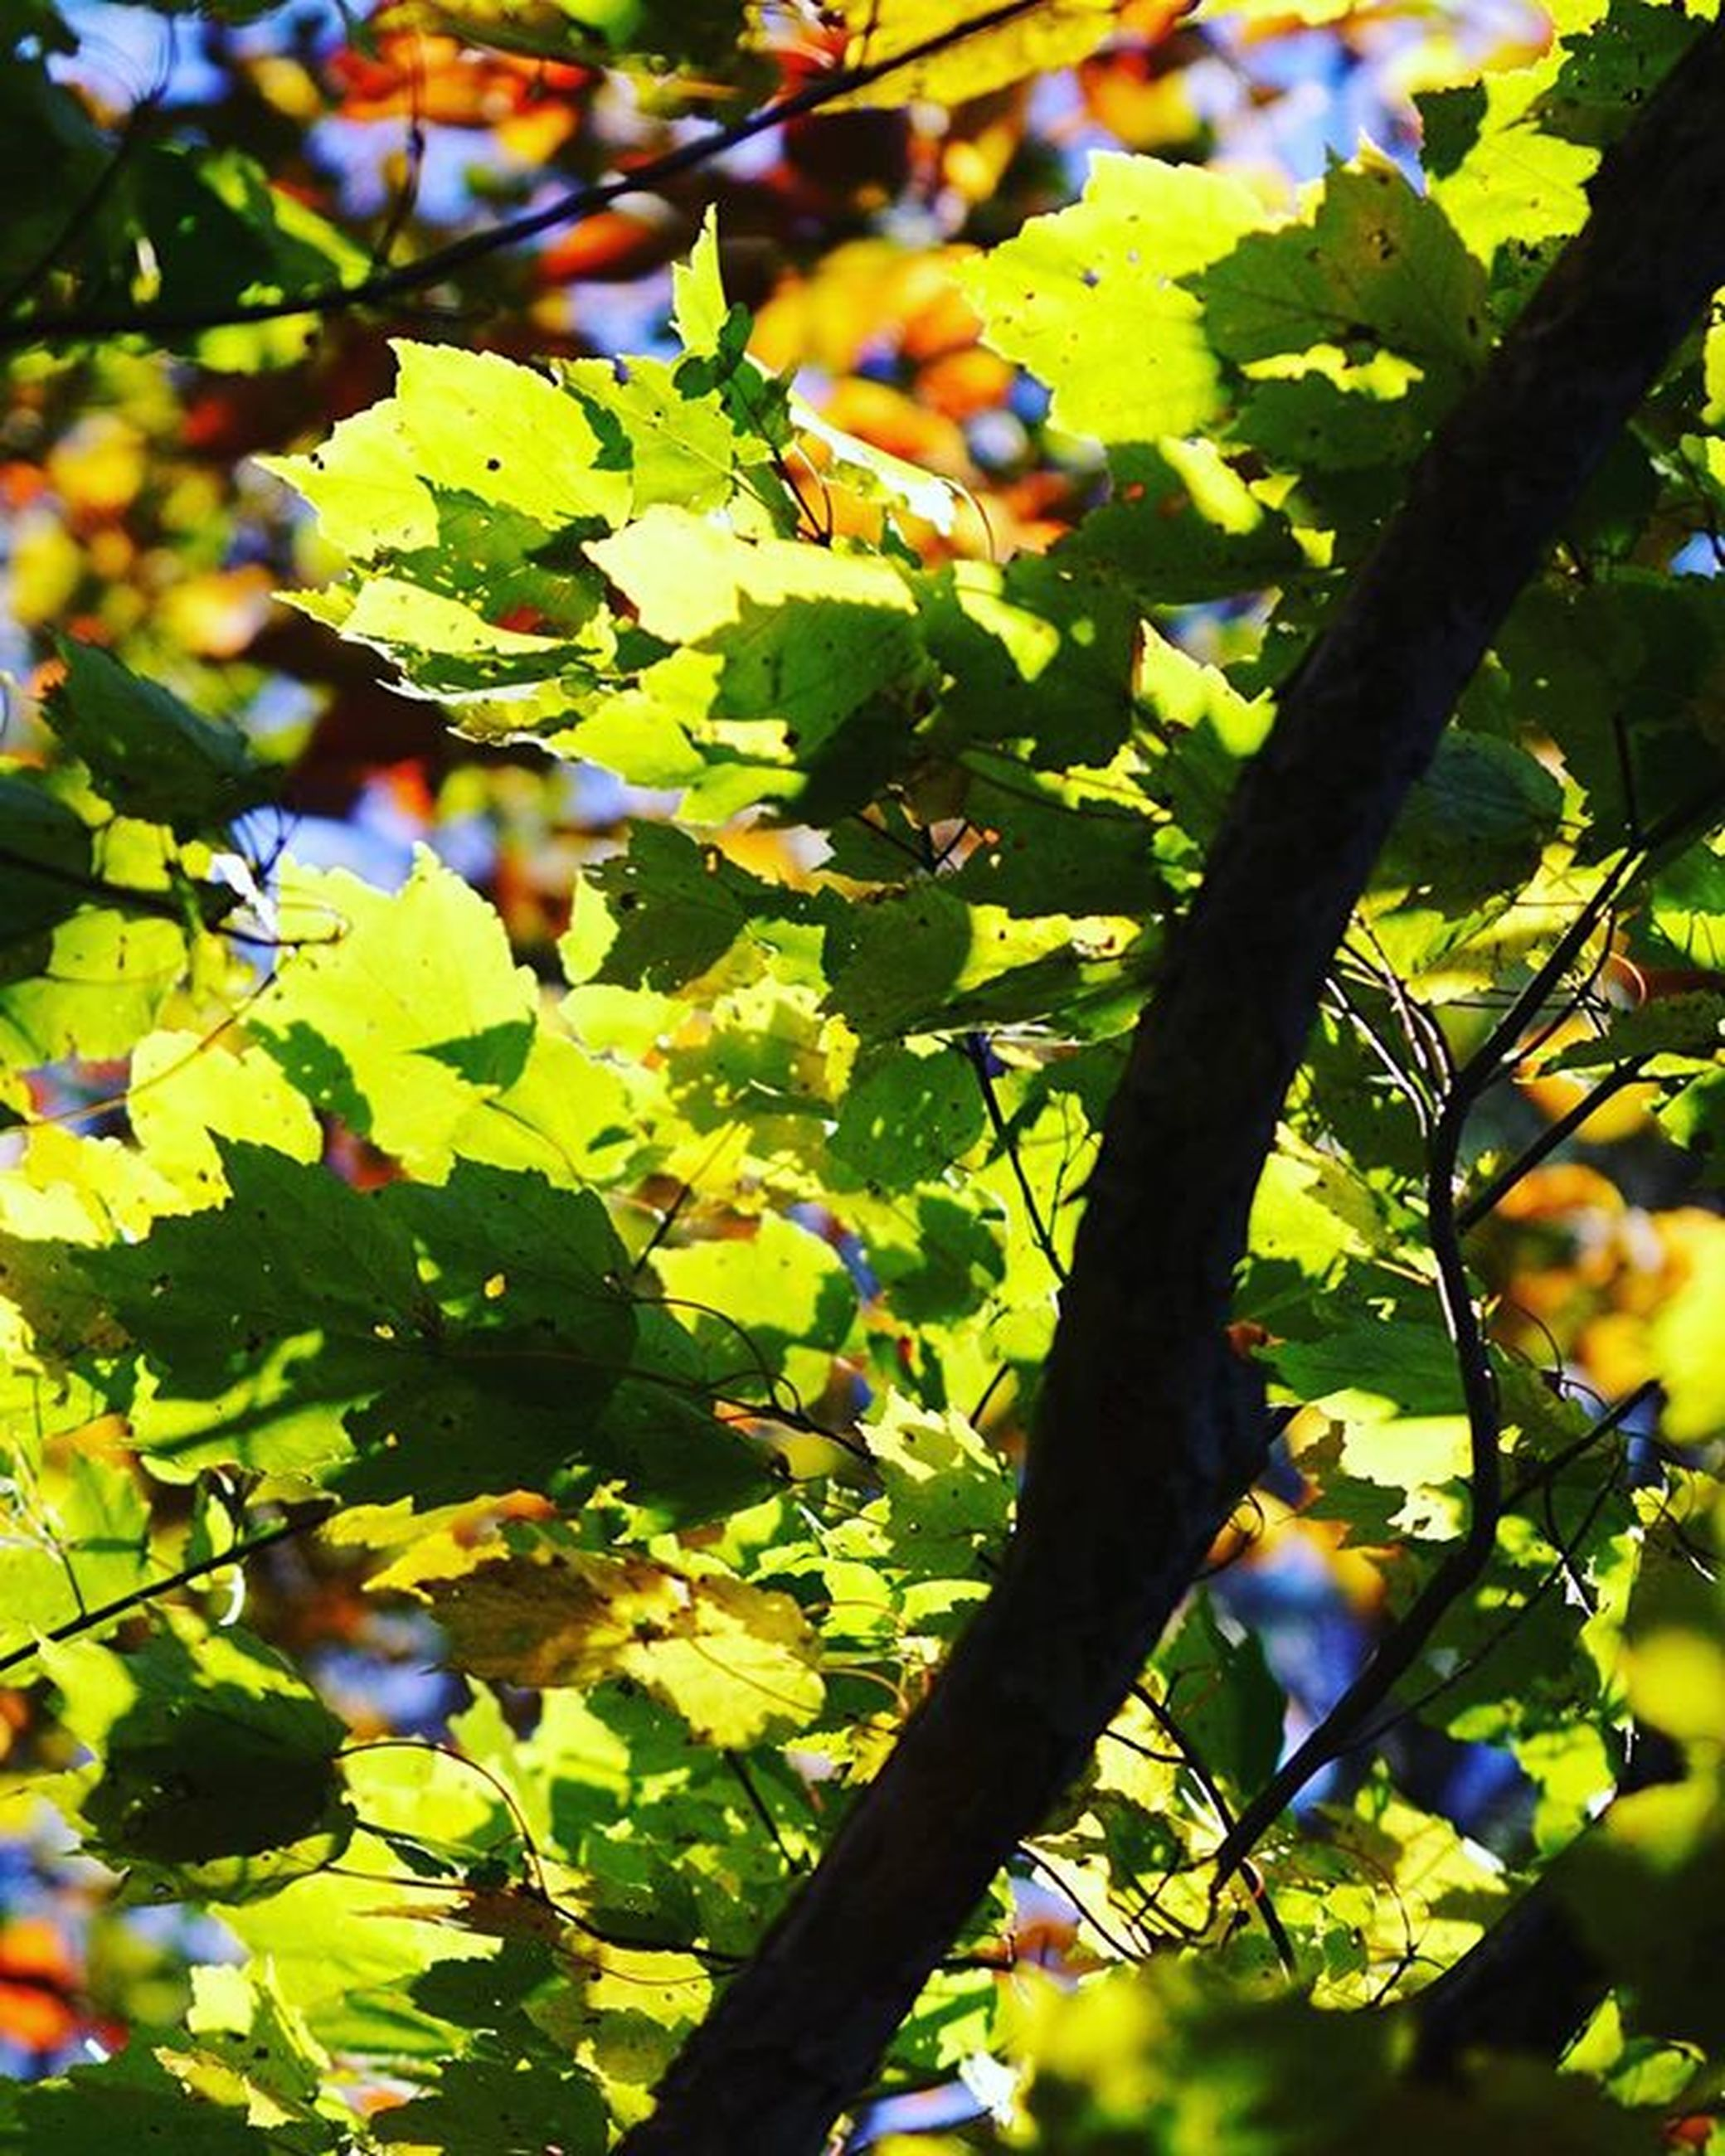 tree, branch, leaf, growth, low angle view, nature, green color, focus on foreground, close-up, beauty in nature, sunlight, day, outdoors, tranquility, freshness, no people, fruit, twig, selective focus, autumn